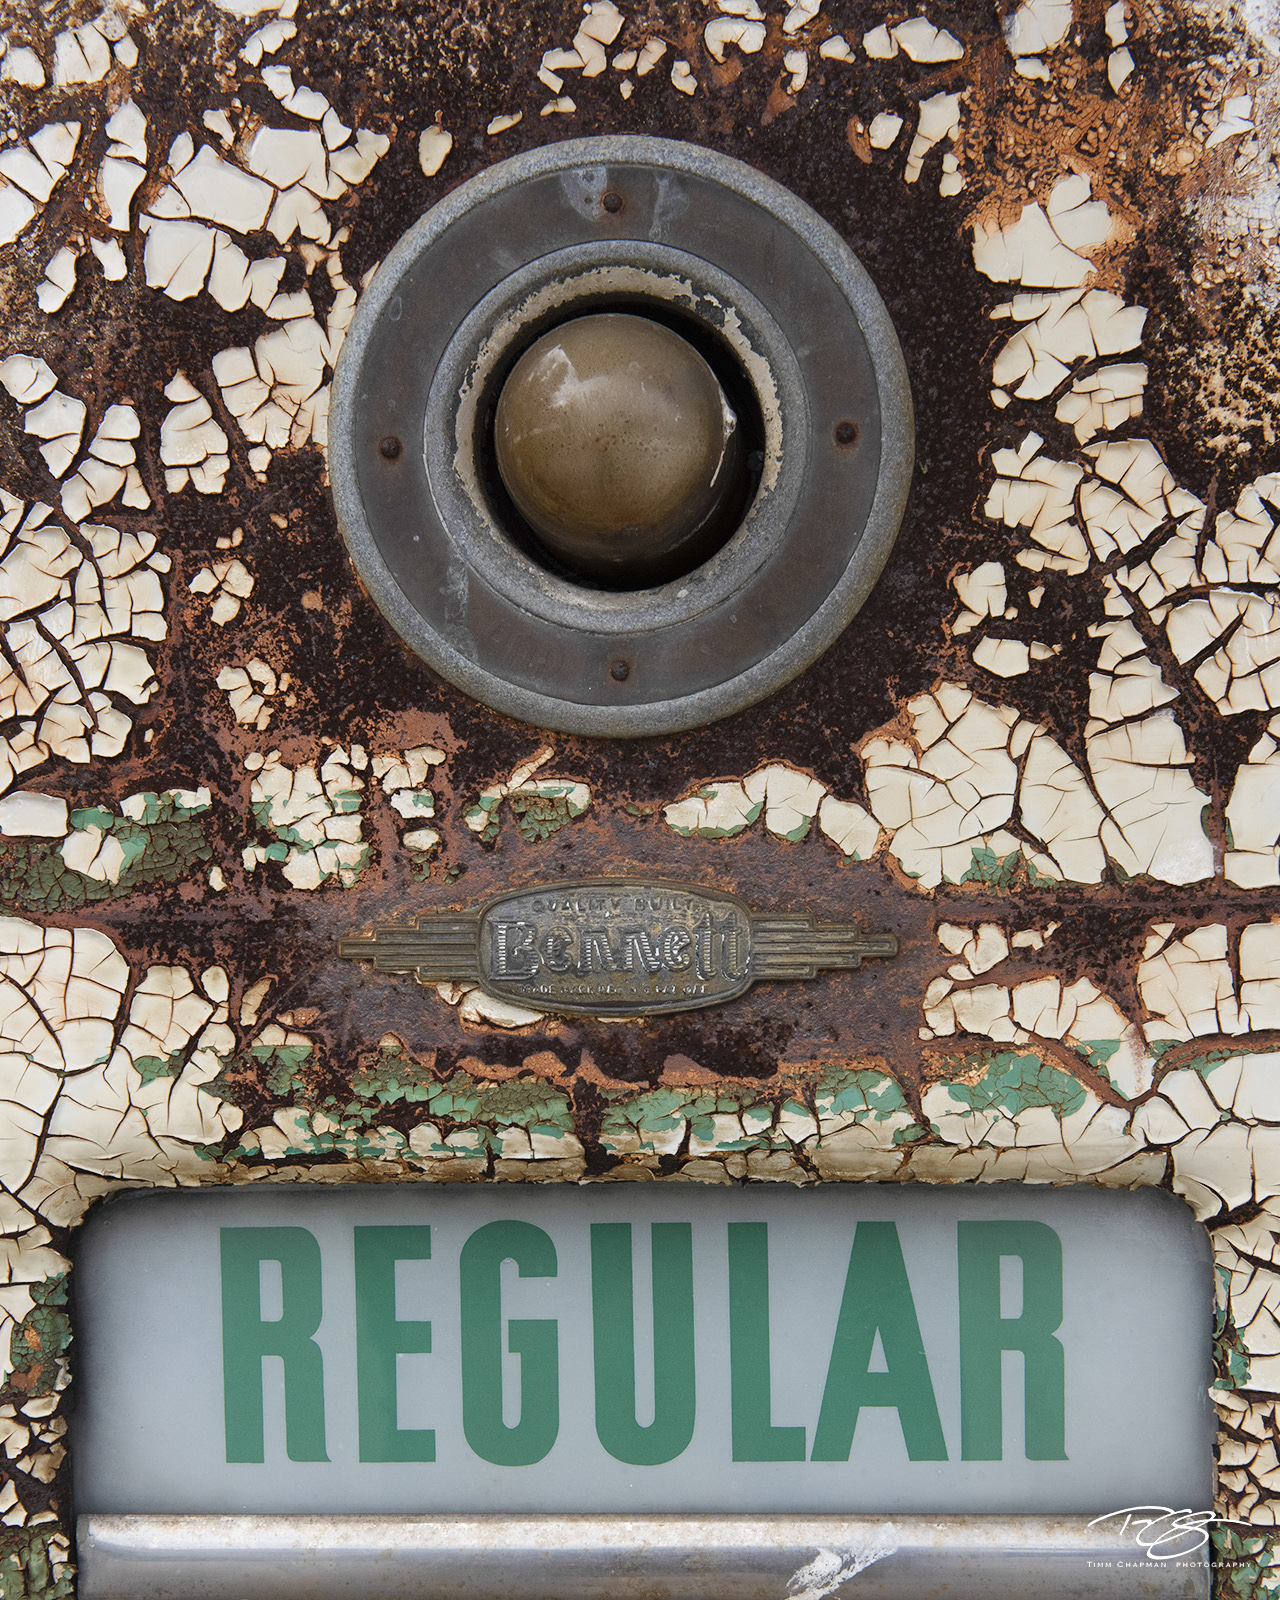 gas pump, fuel pump, petrol, peeling paint, gas station, fueling station, abandoned, derelict, old, weathered, rust, rusty, rusted, regular, fuel, gasoline, photo